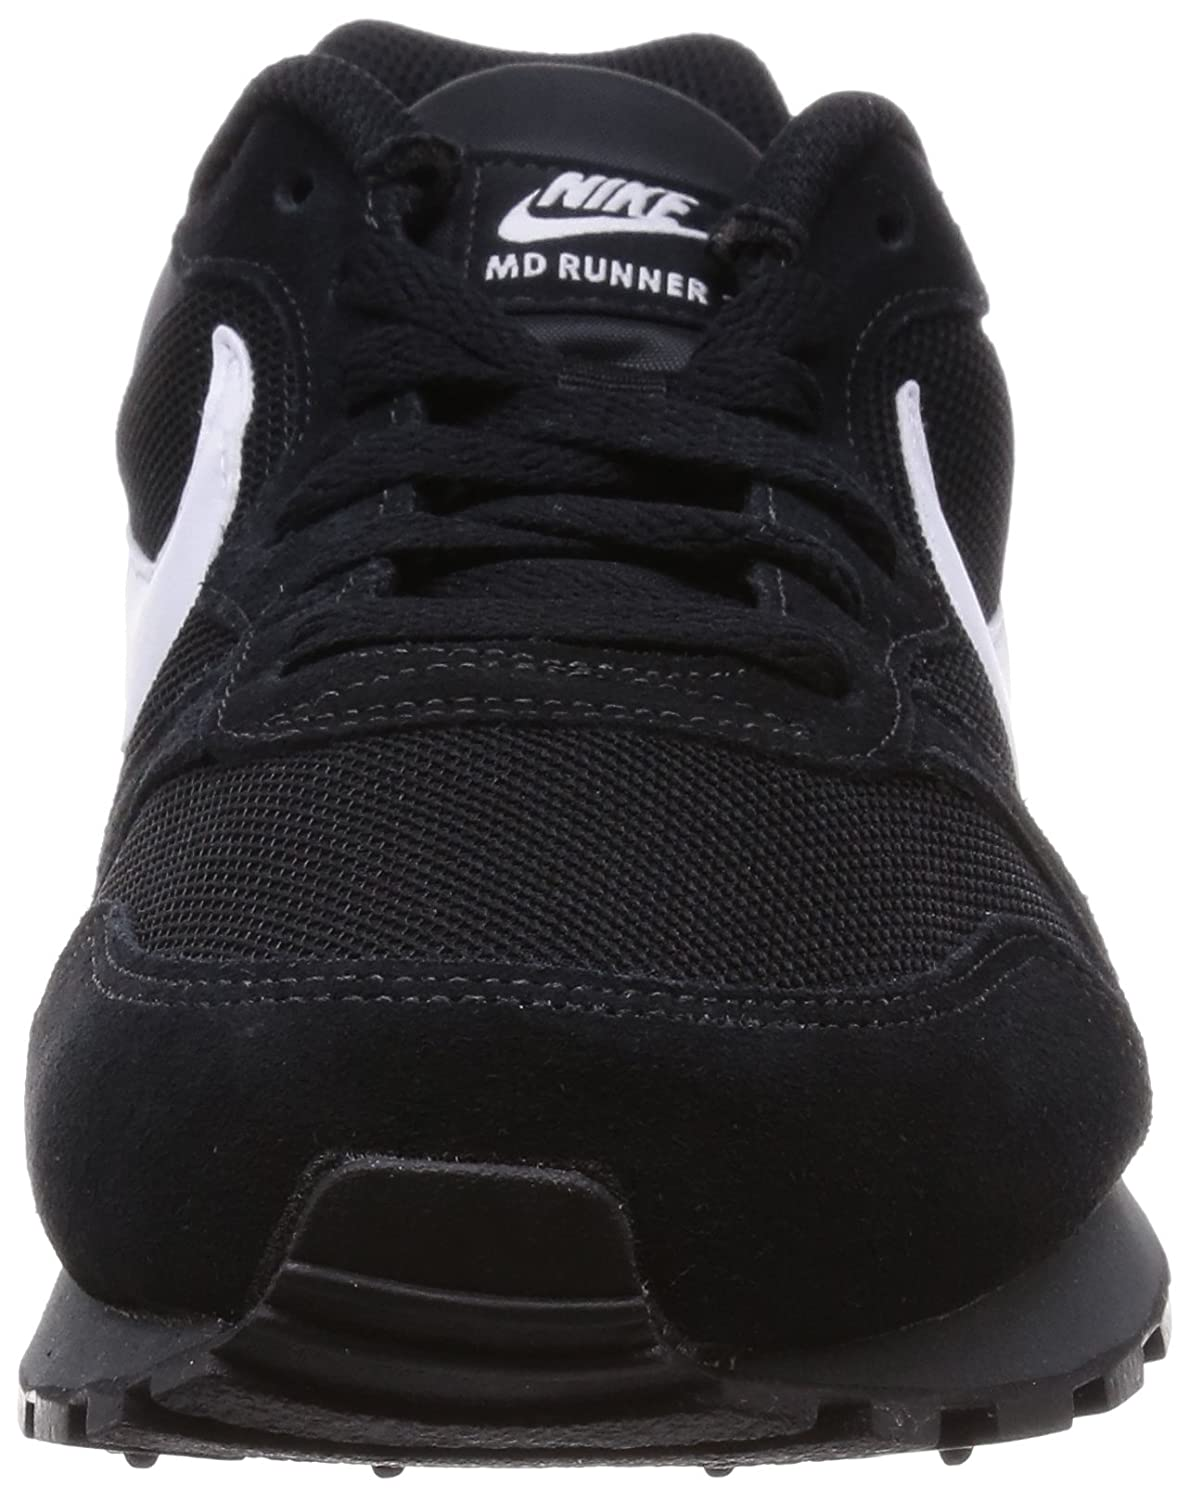 new style 1919a ffa2f Nike MD Runner 2, Baskets mode homme - Noir (Black White-Anthracite 010),  45.5 EU  Amazon.fr  Chaussures et Sacs